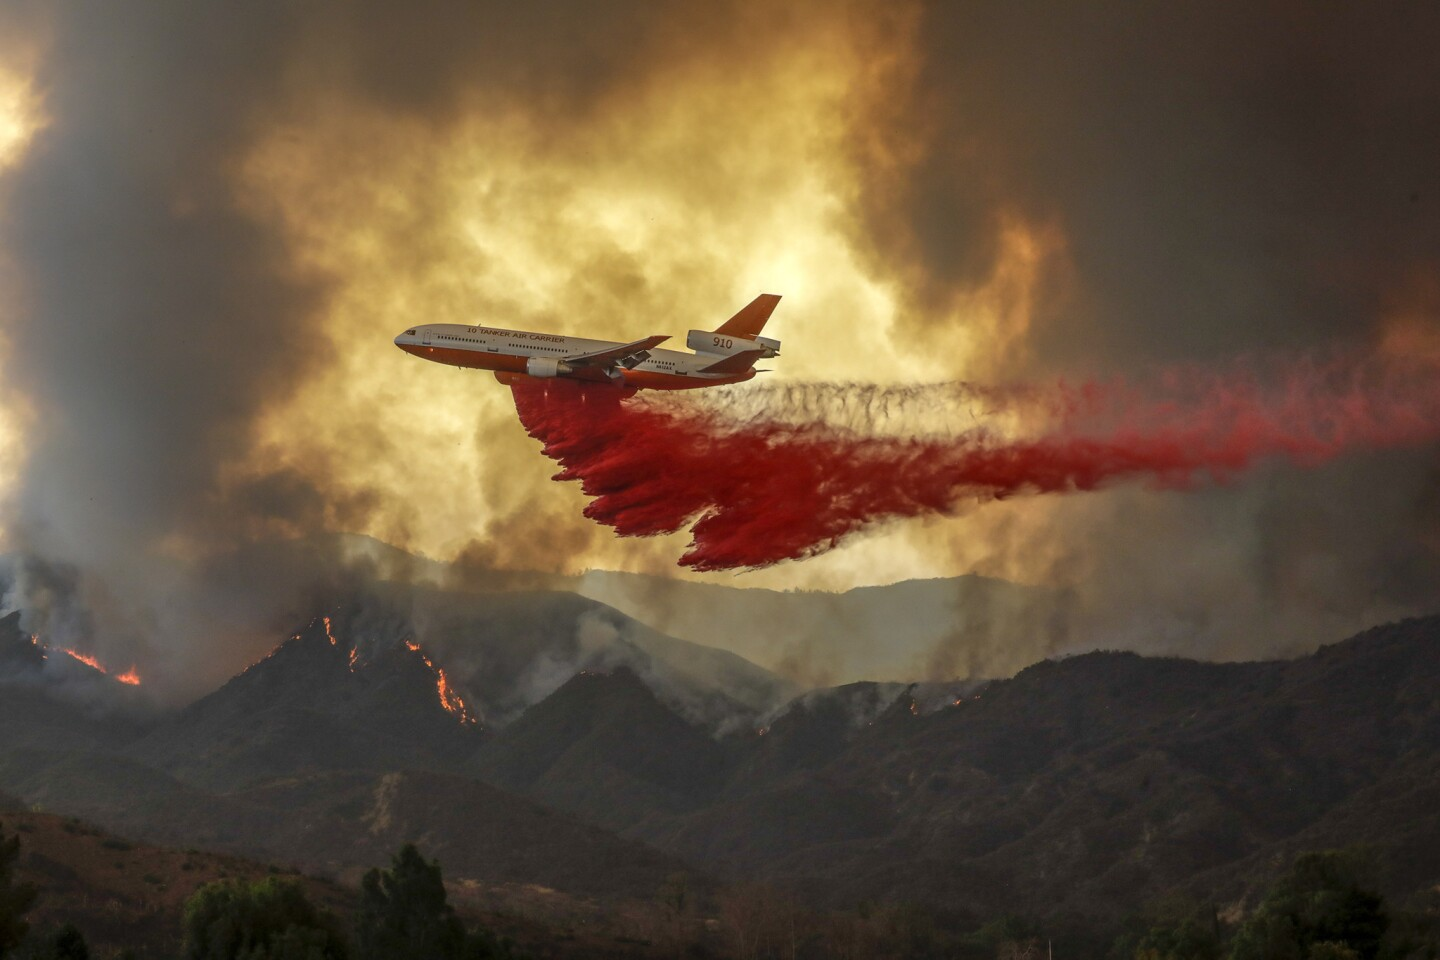 An air tanker fights the Holy fire, which forced more evacuations of neighborhoods in the Lake Elsinore area Wednesday.